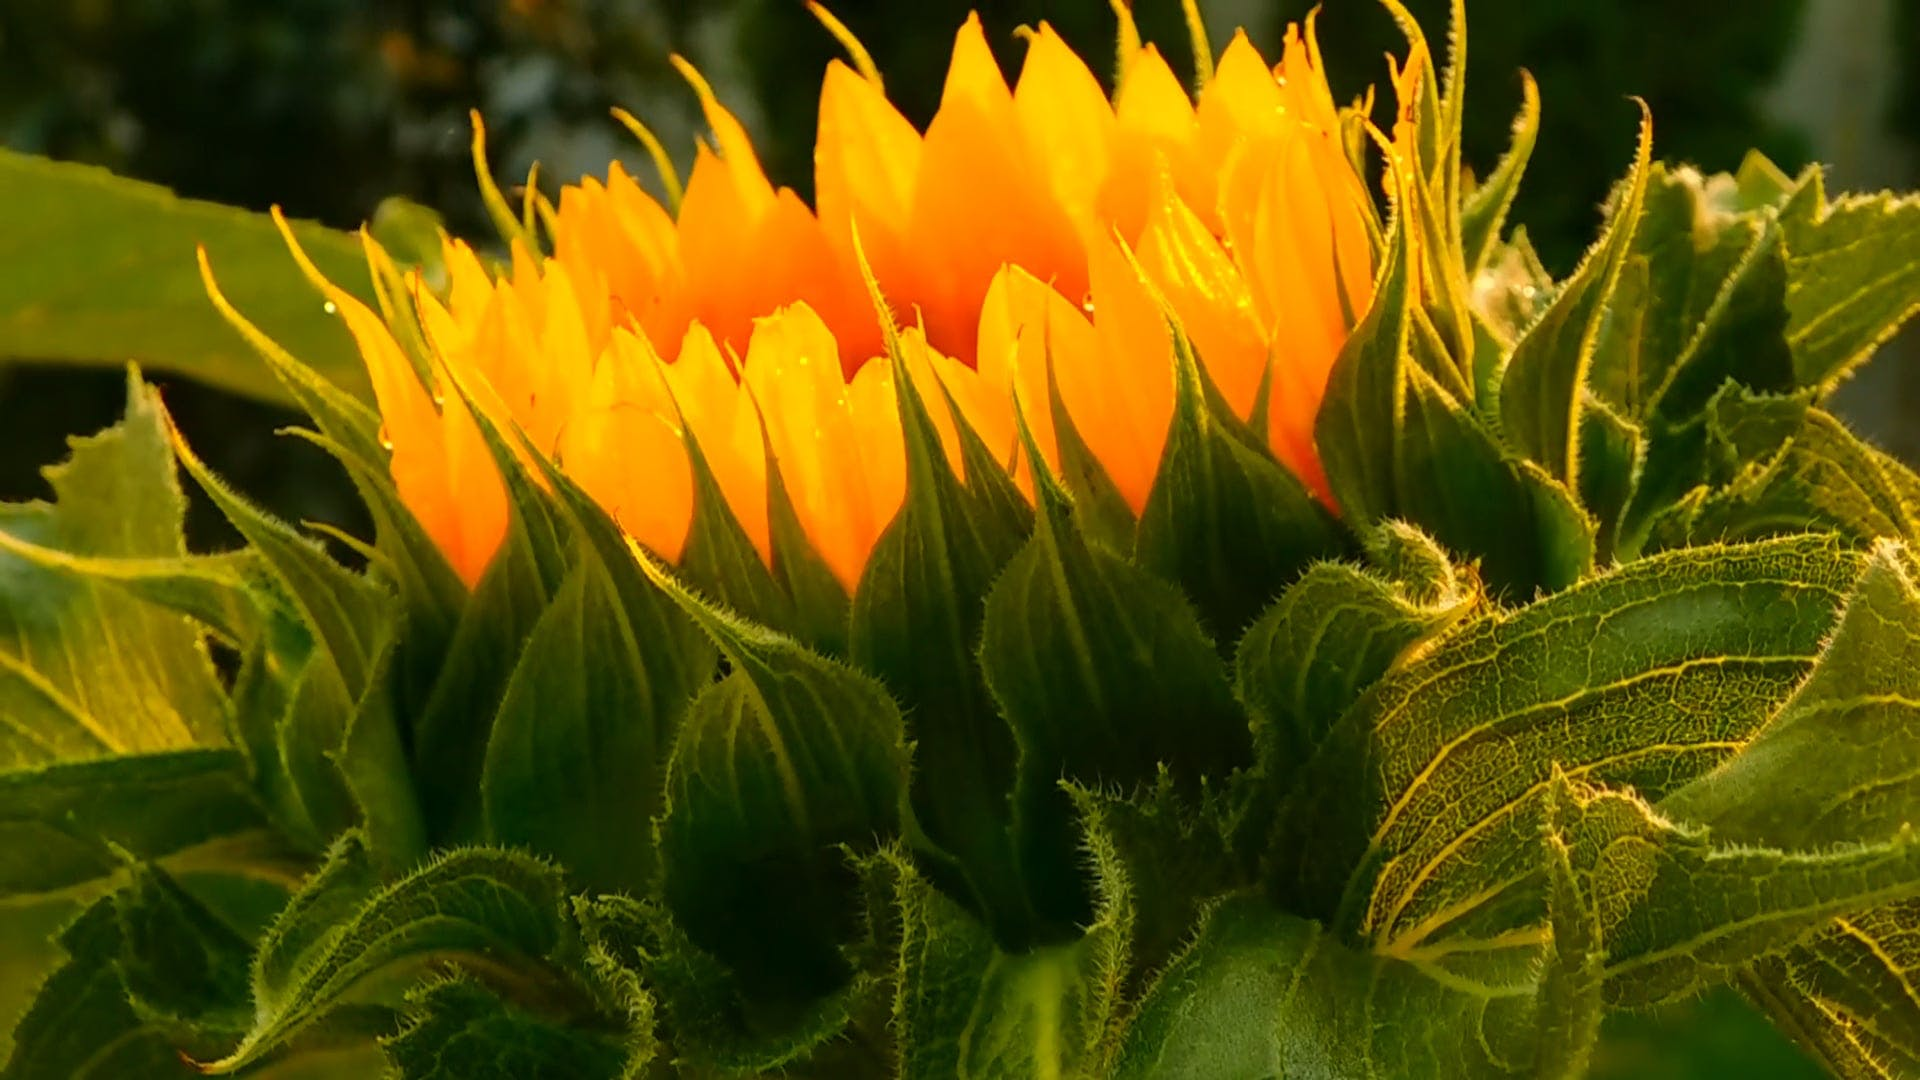 Side View Of A Blooming Sunflower